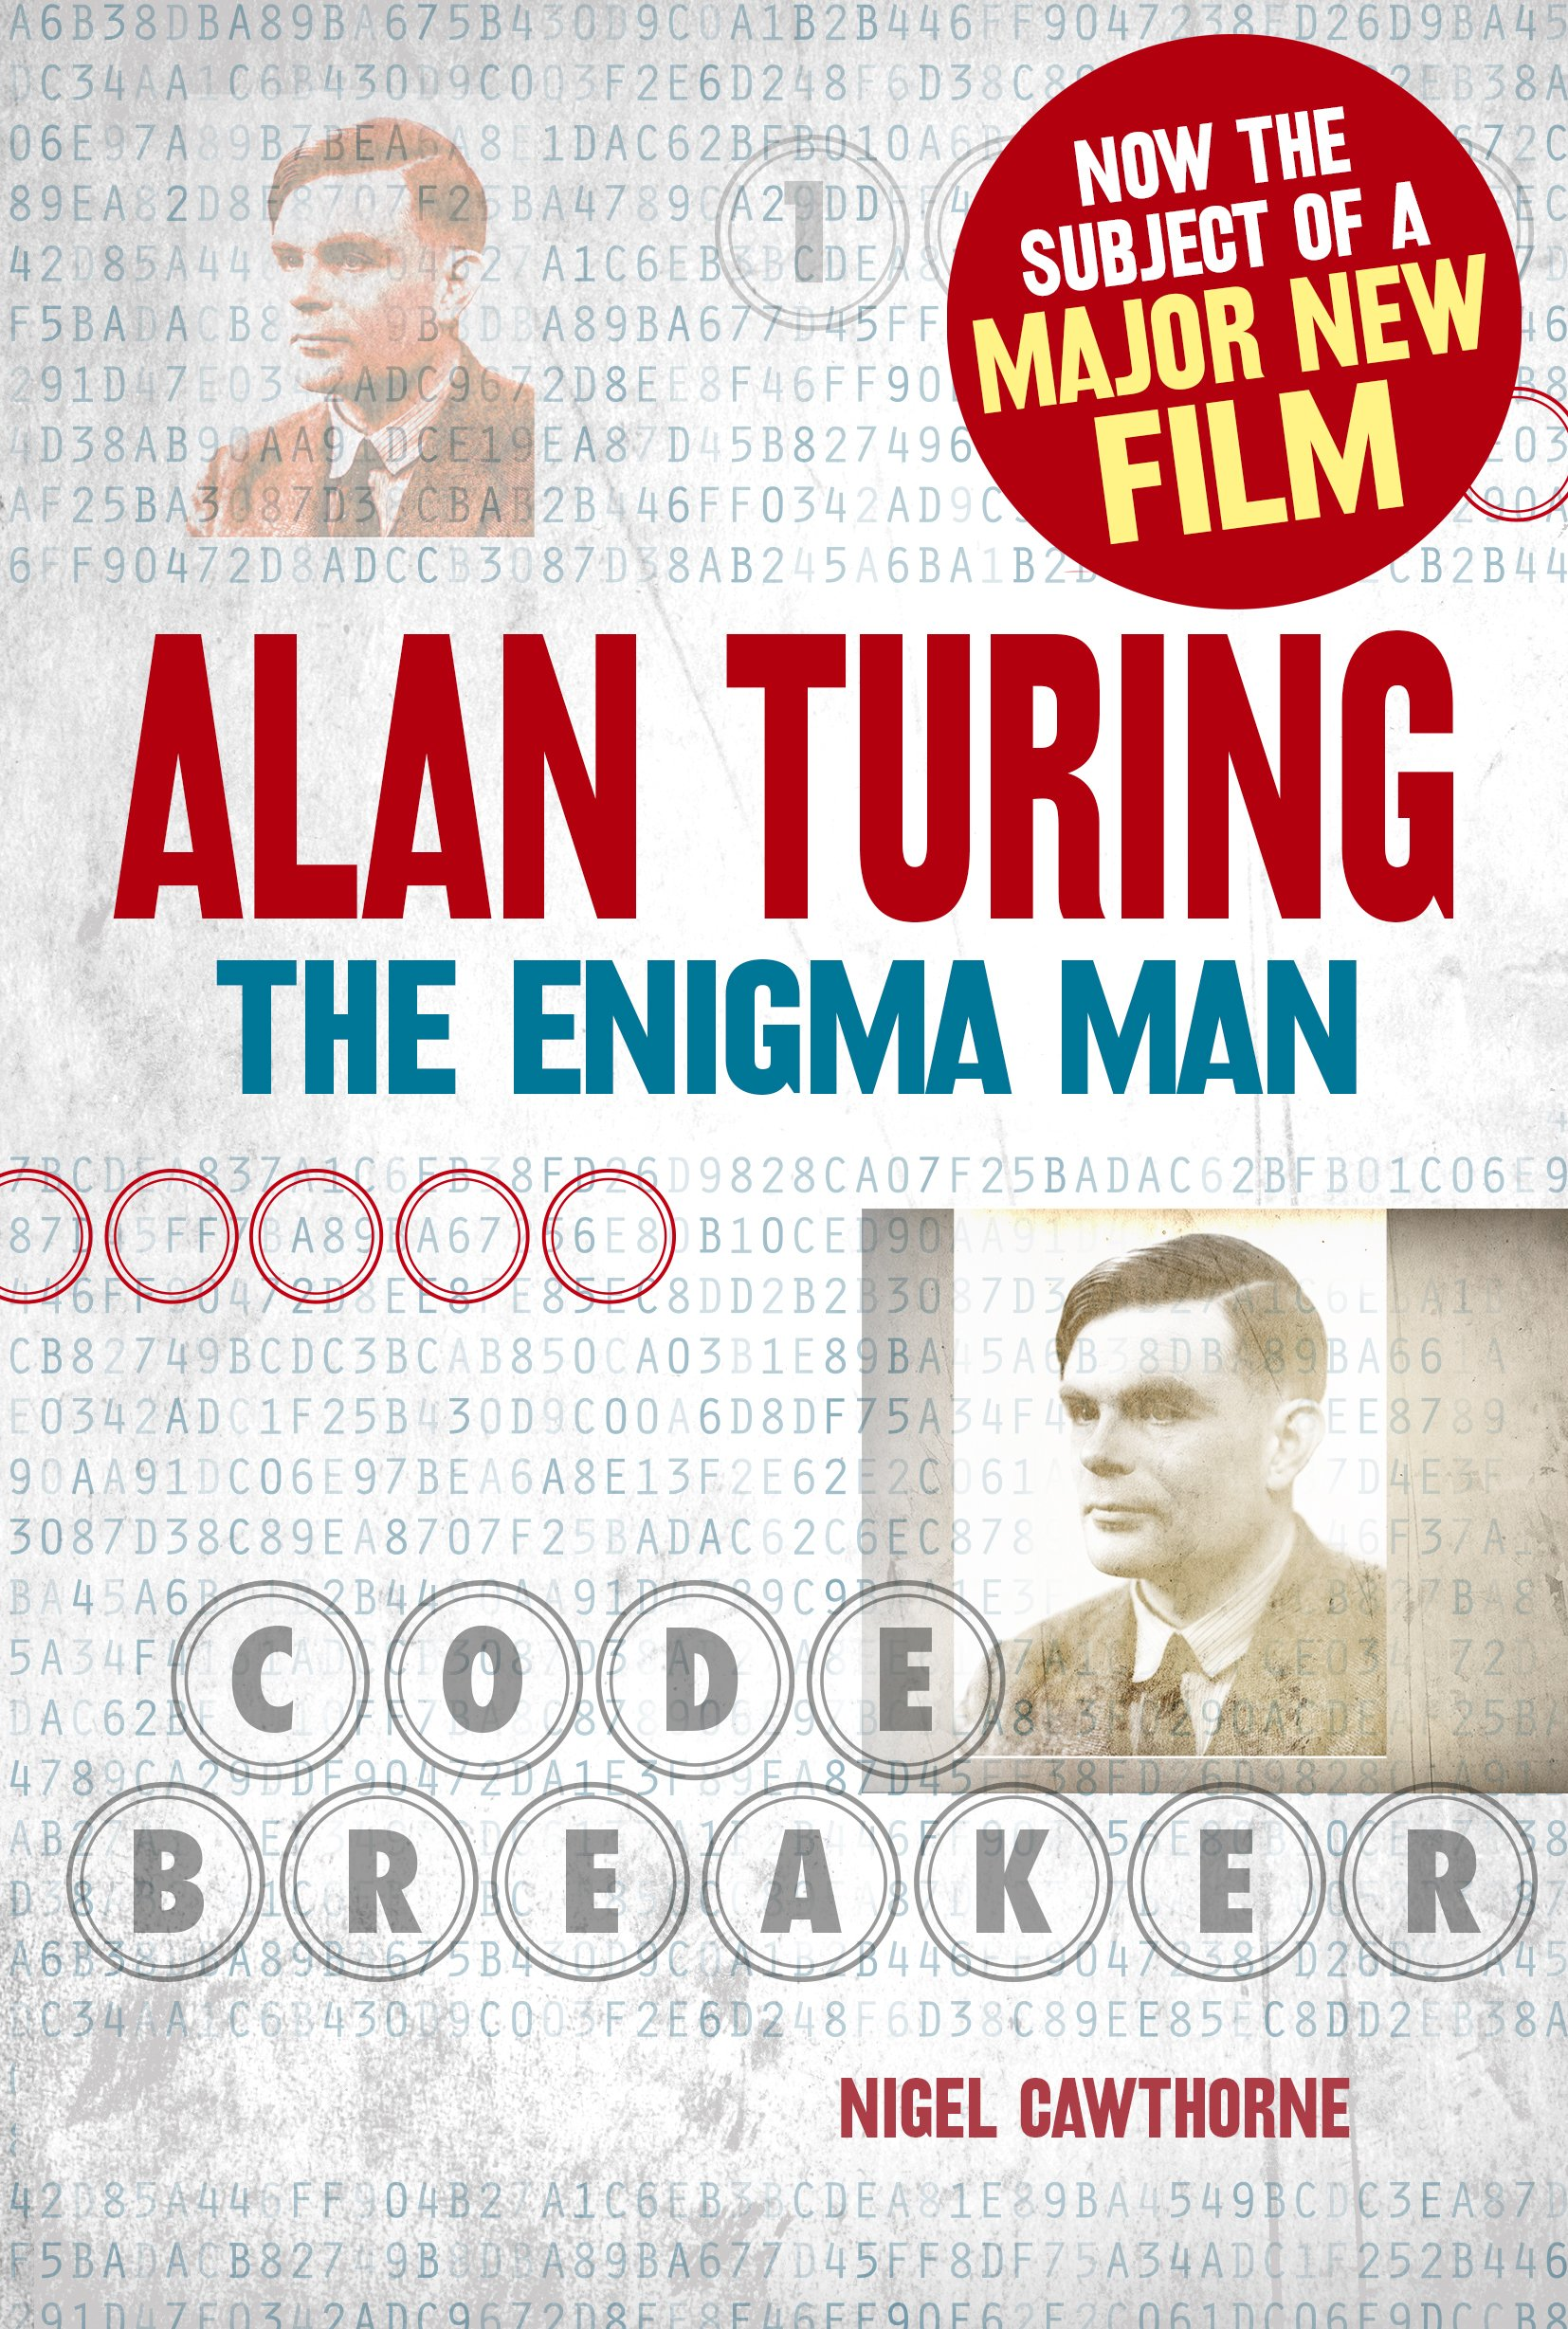 alan-turing-the-enigma-man